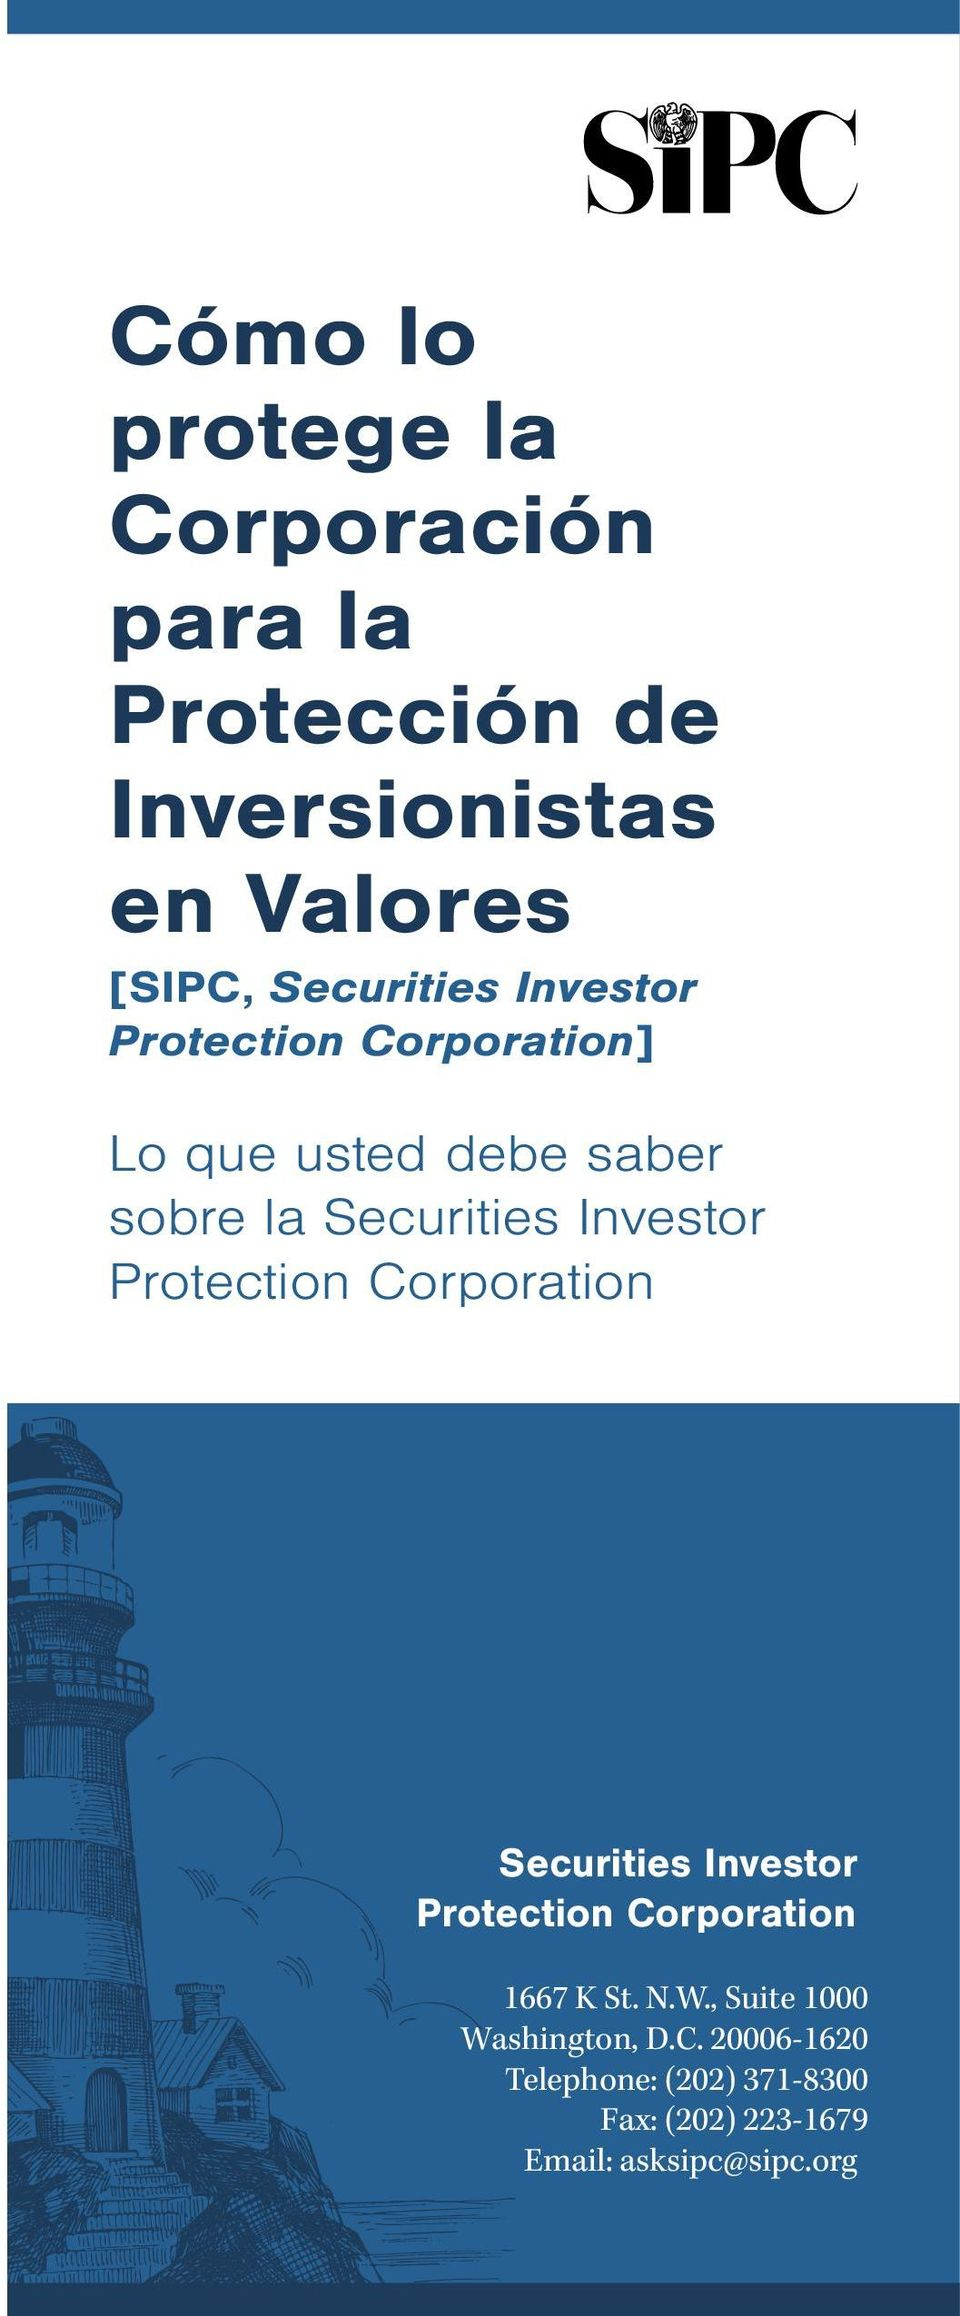 Investor Protection Corporation Securities Investor Protection Corporation 1667 K St. N.W.